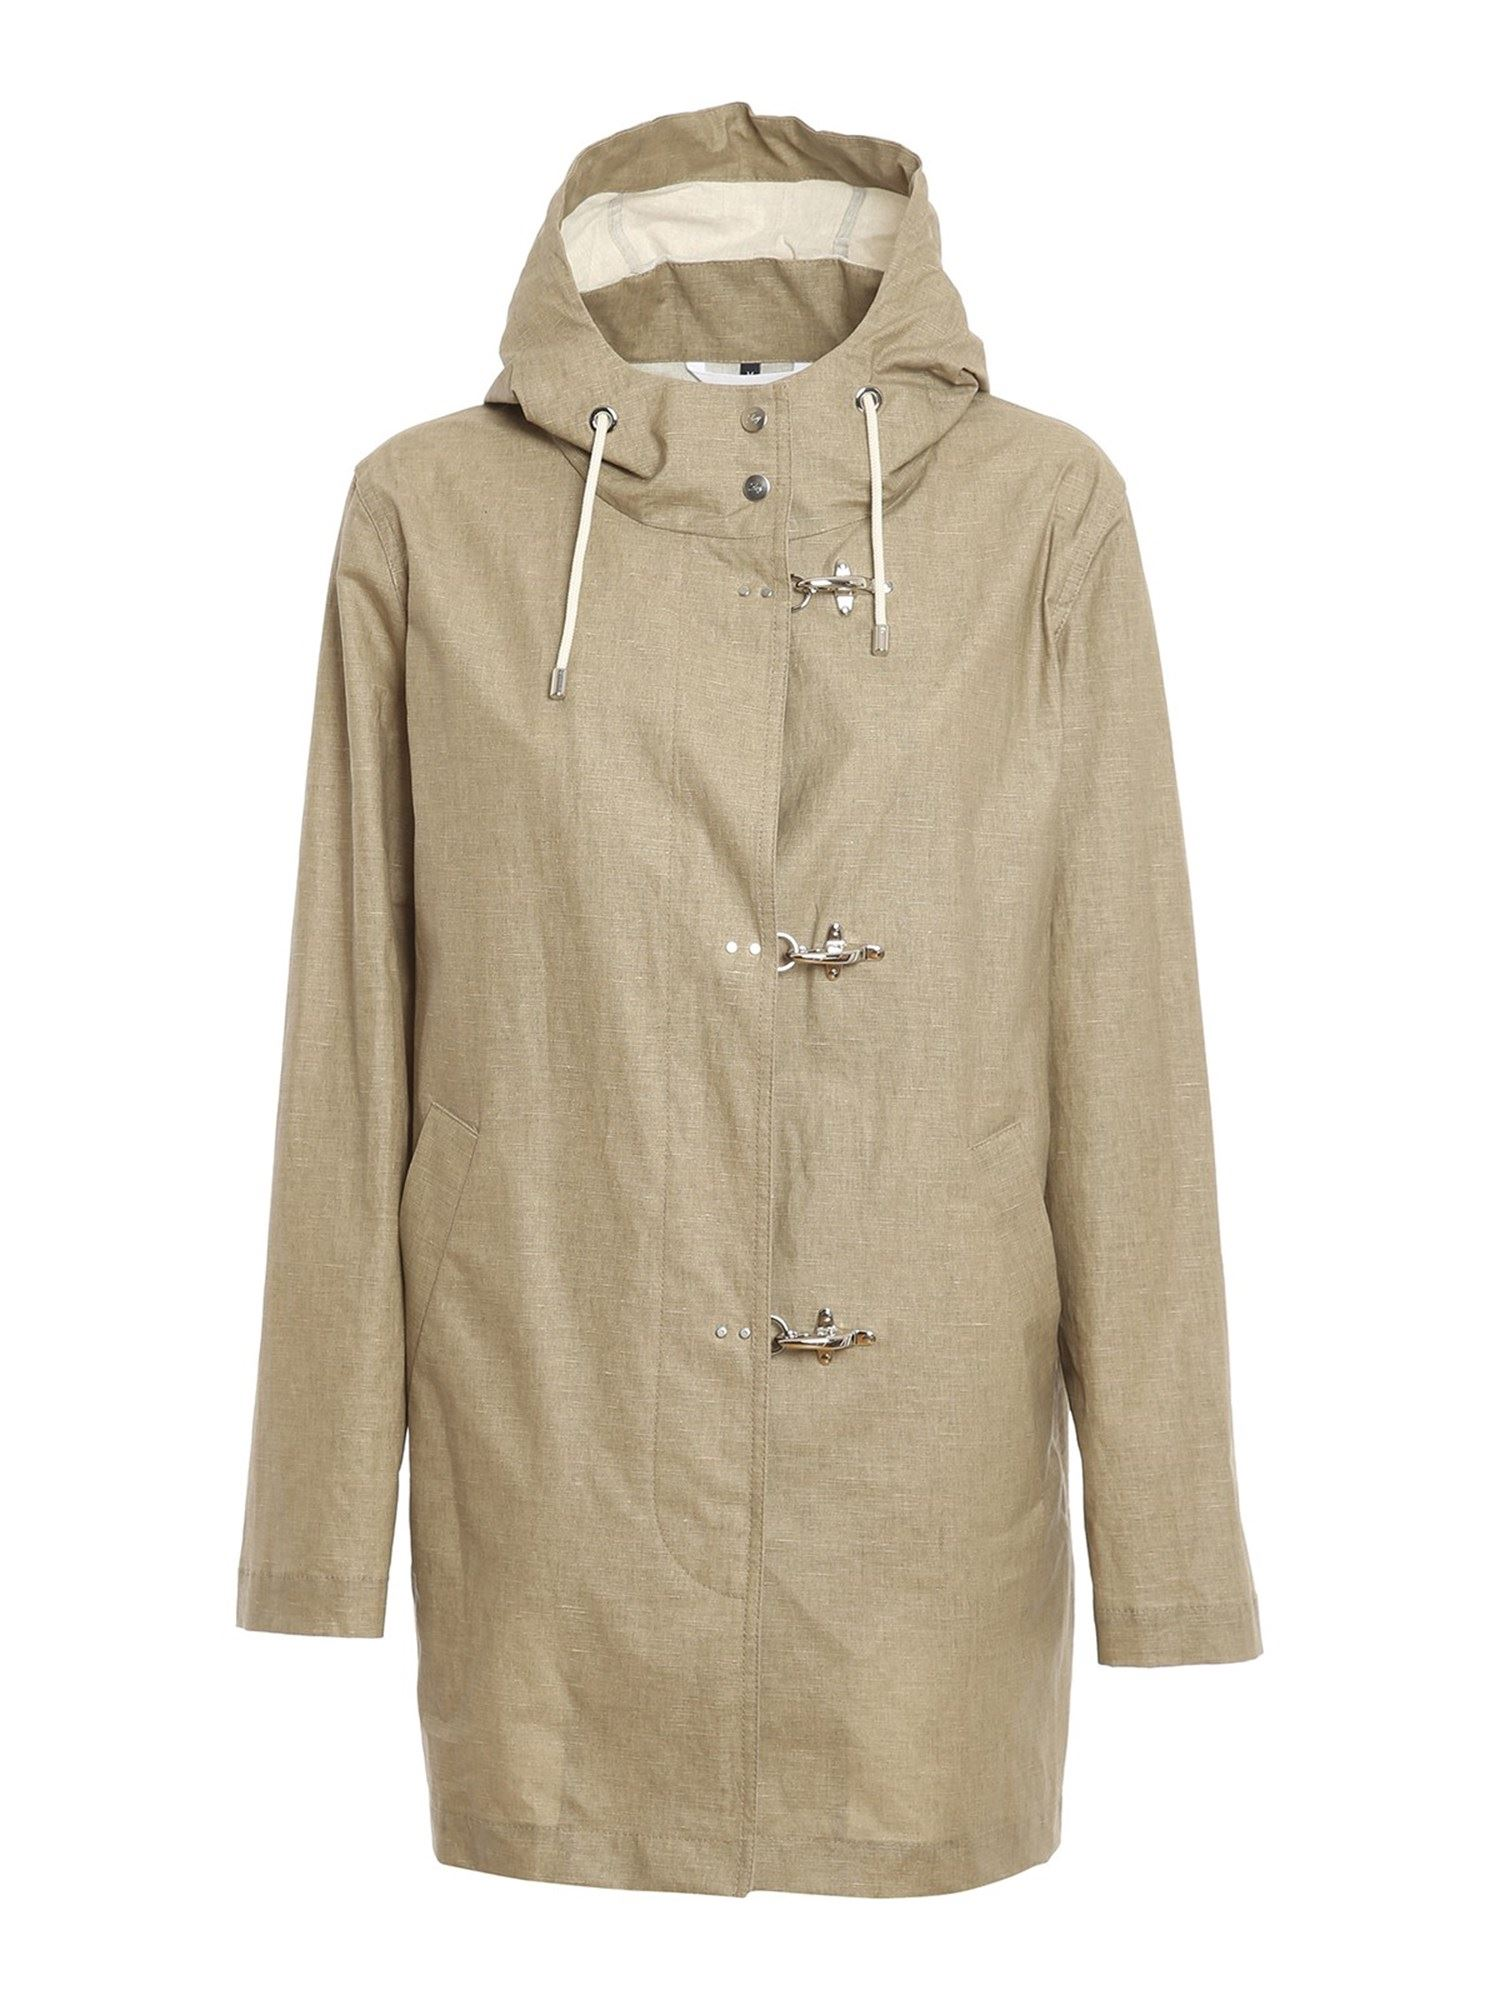 Fay Linens RESIN COTTON LINEN BLEND COAT IN BEIGE